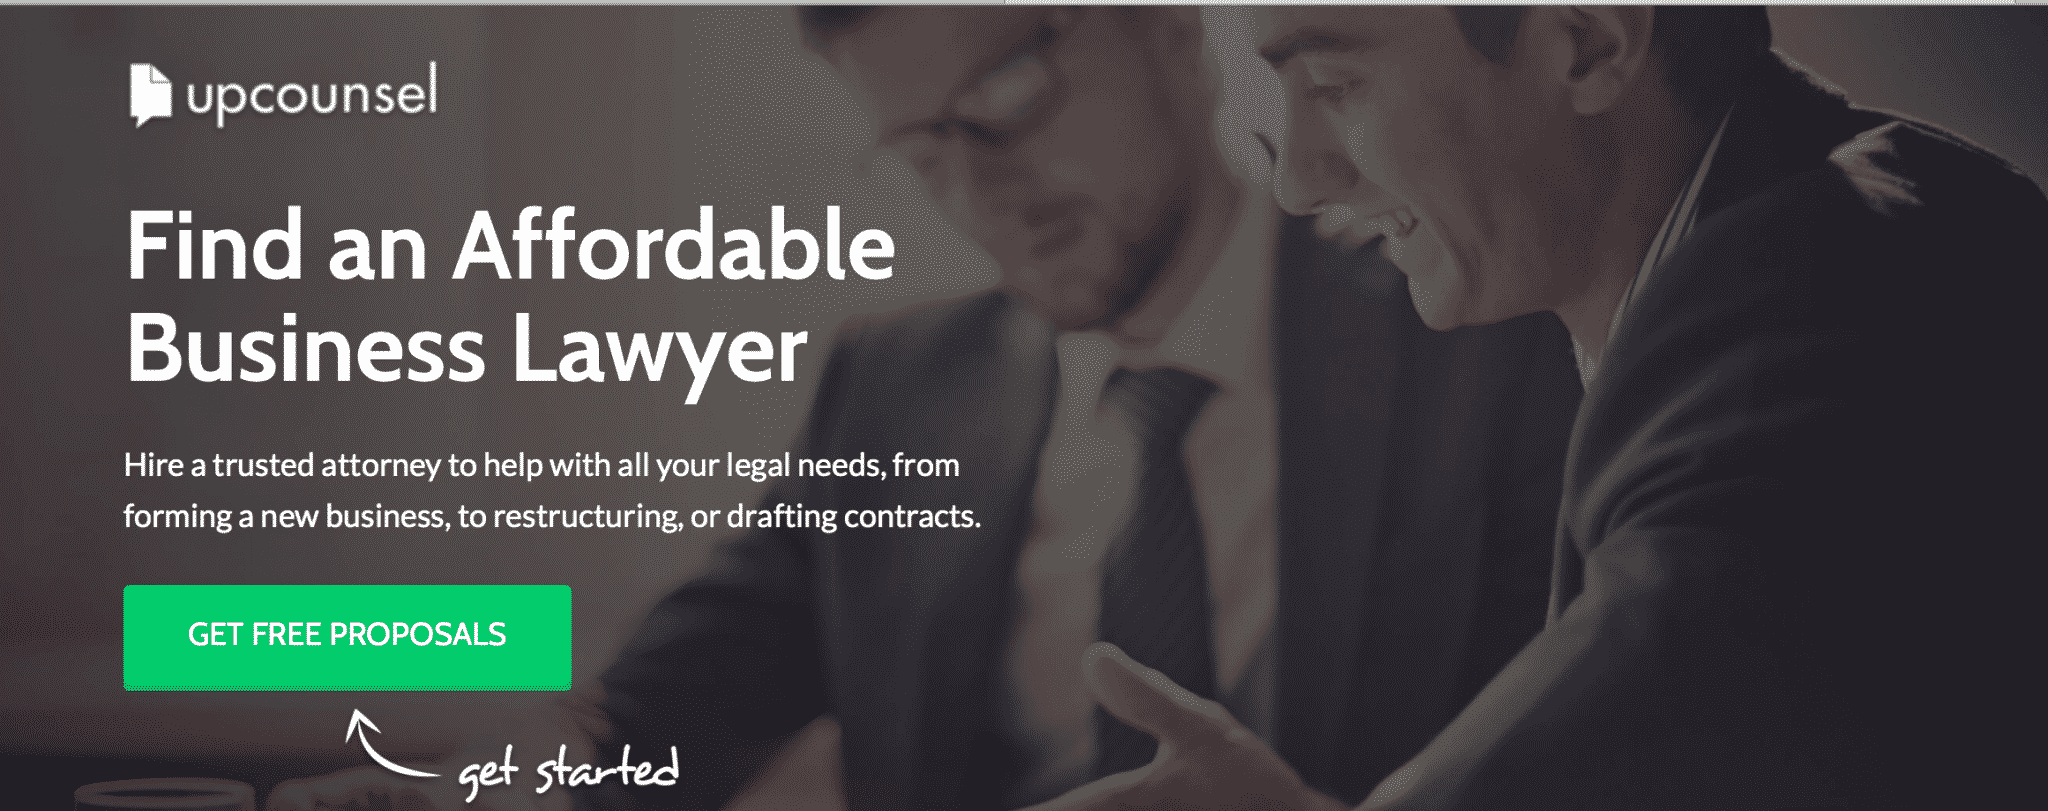 landing pages for lawyers